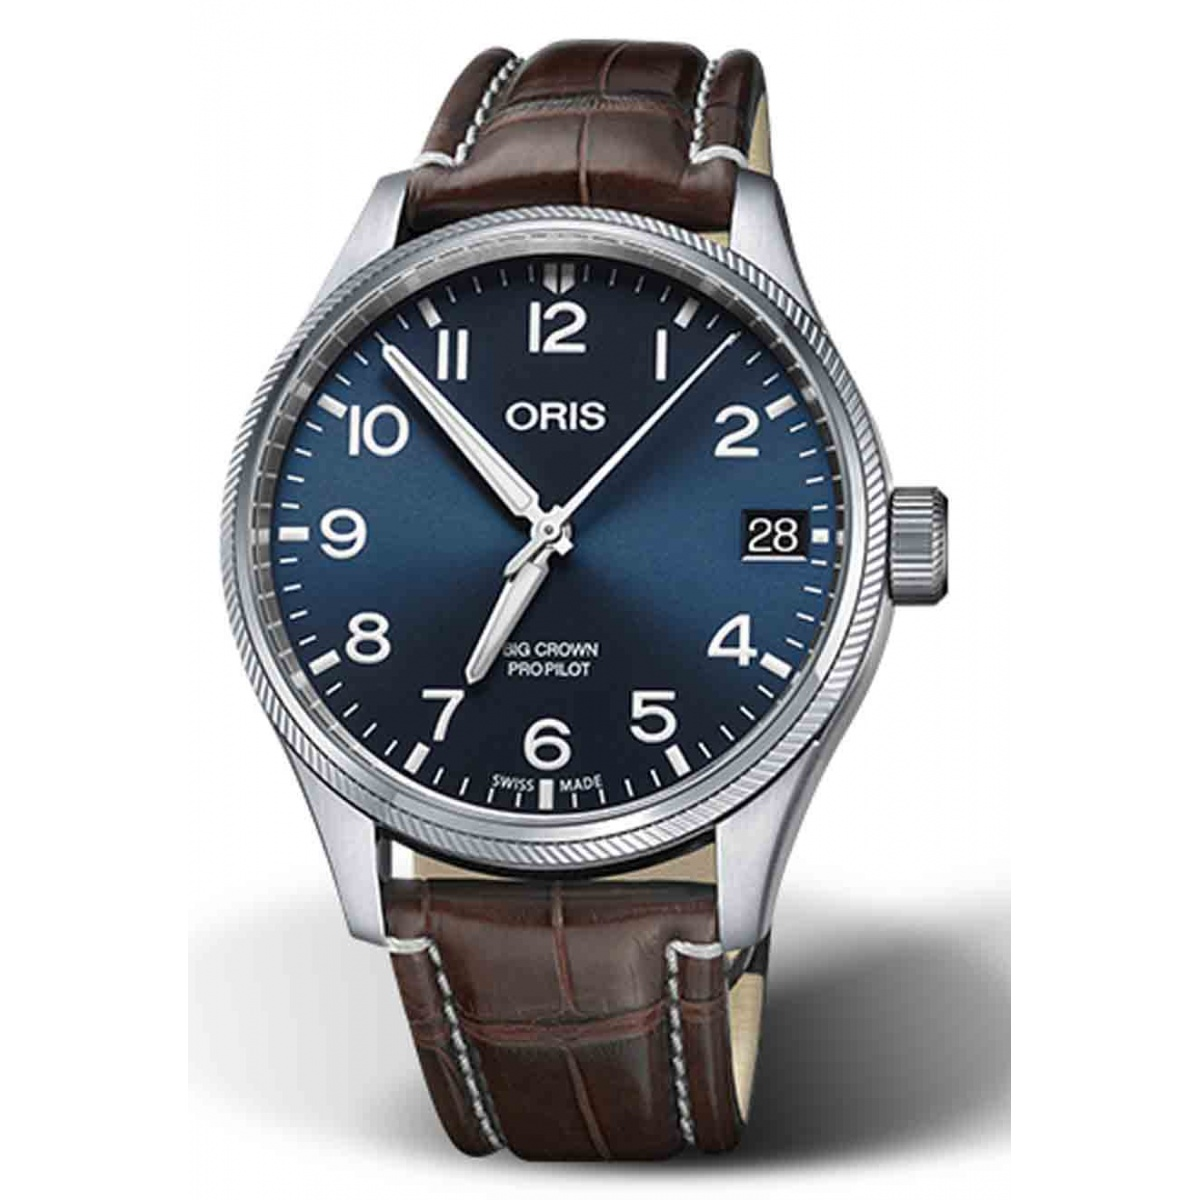 ORIS BIG CROWN PROPILOT BIG DATE 100 M ∅41 mm, Esfera azul, brazalete cocodrilo marrón